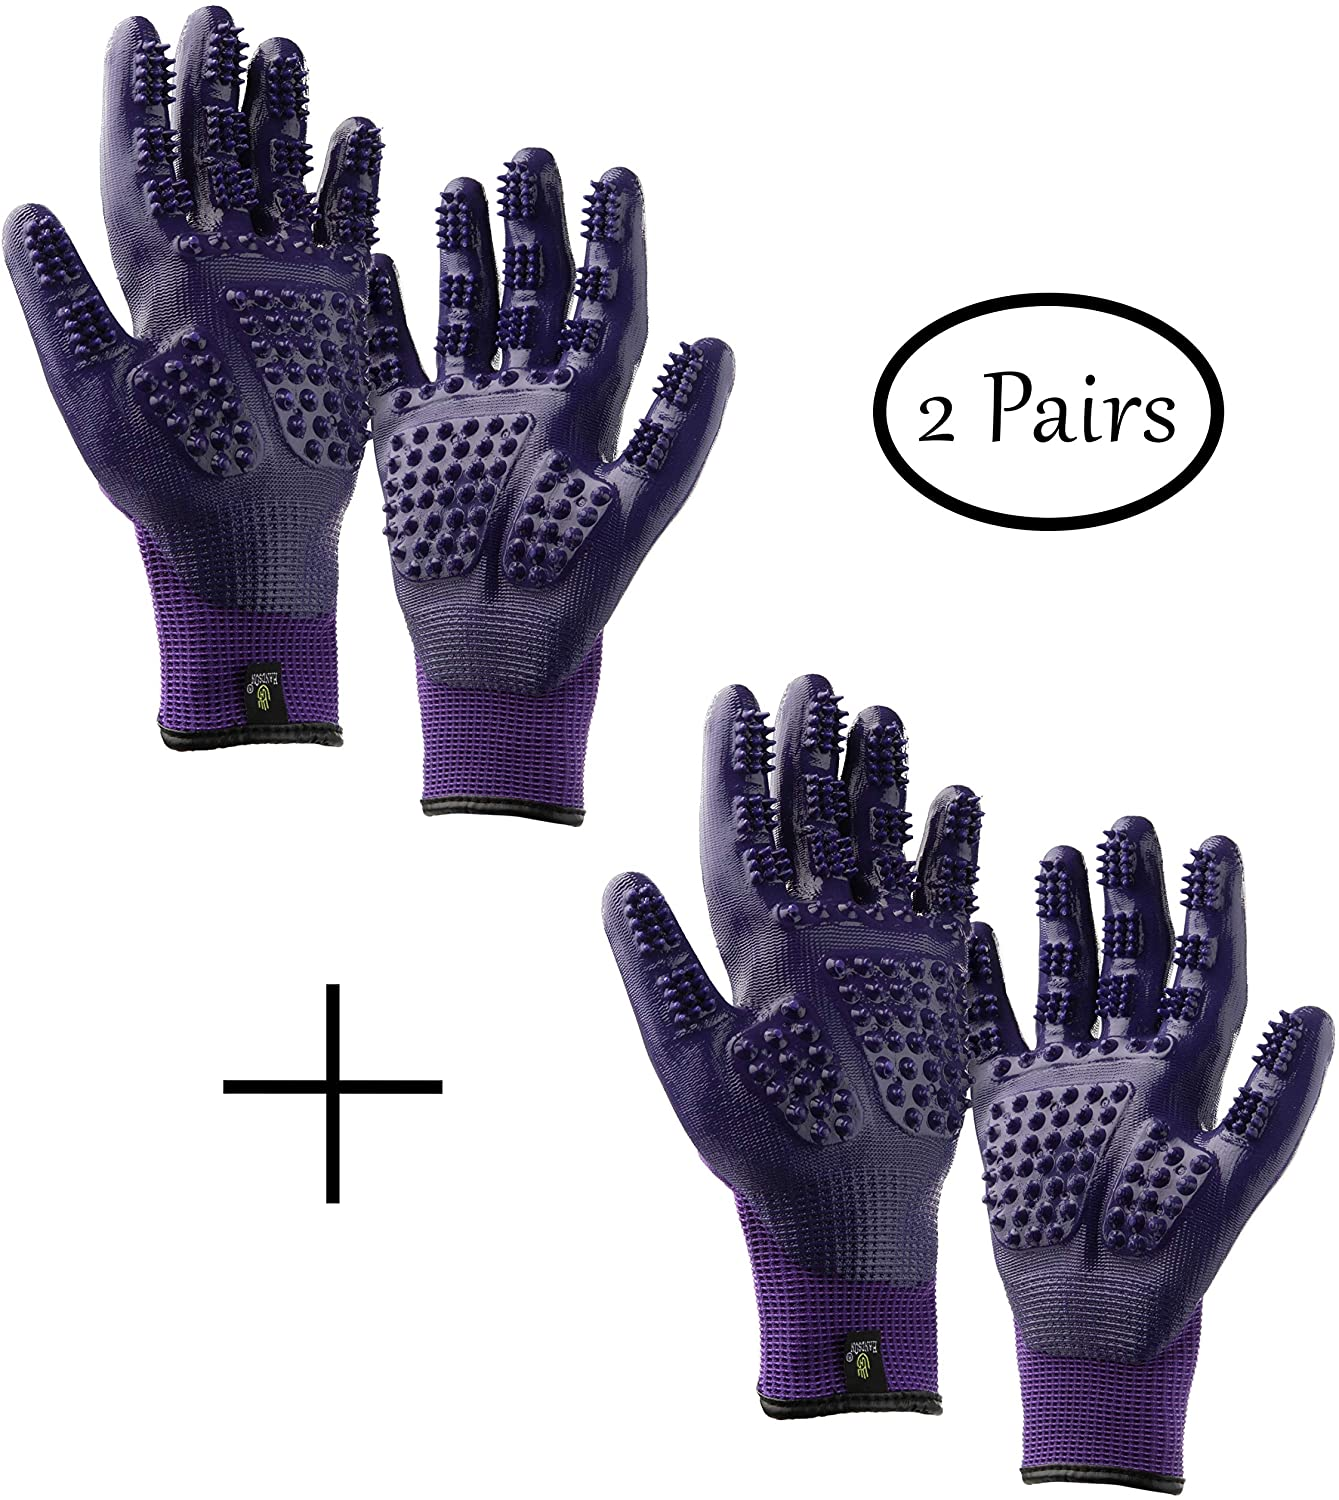 Handson Pet Grooming Gloves - #1 Ranked, Award Winning Shedding, Bathing, Hair Remover Gloves for Cats, Dogs, and Horses (2 Pairs, Same Color)